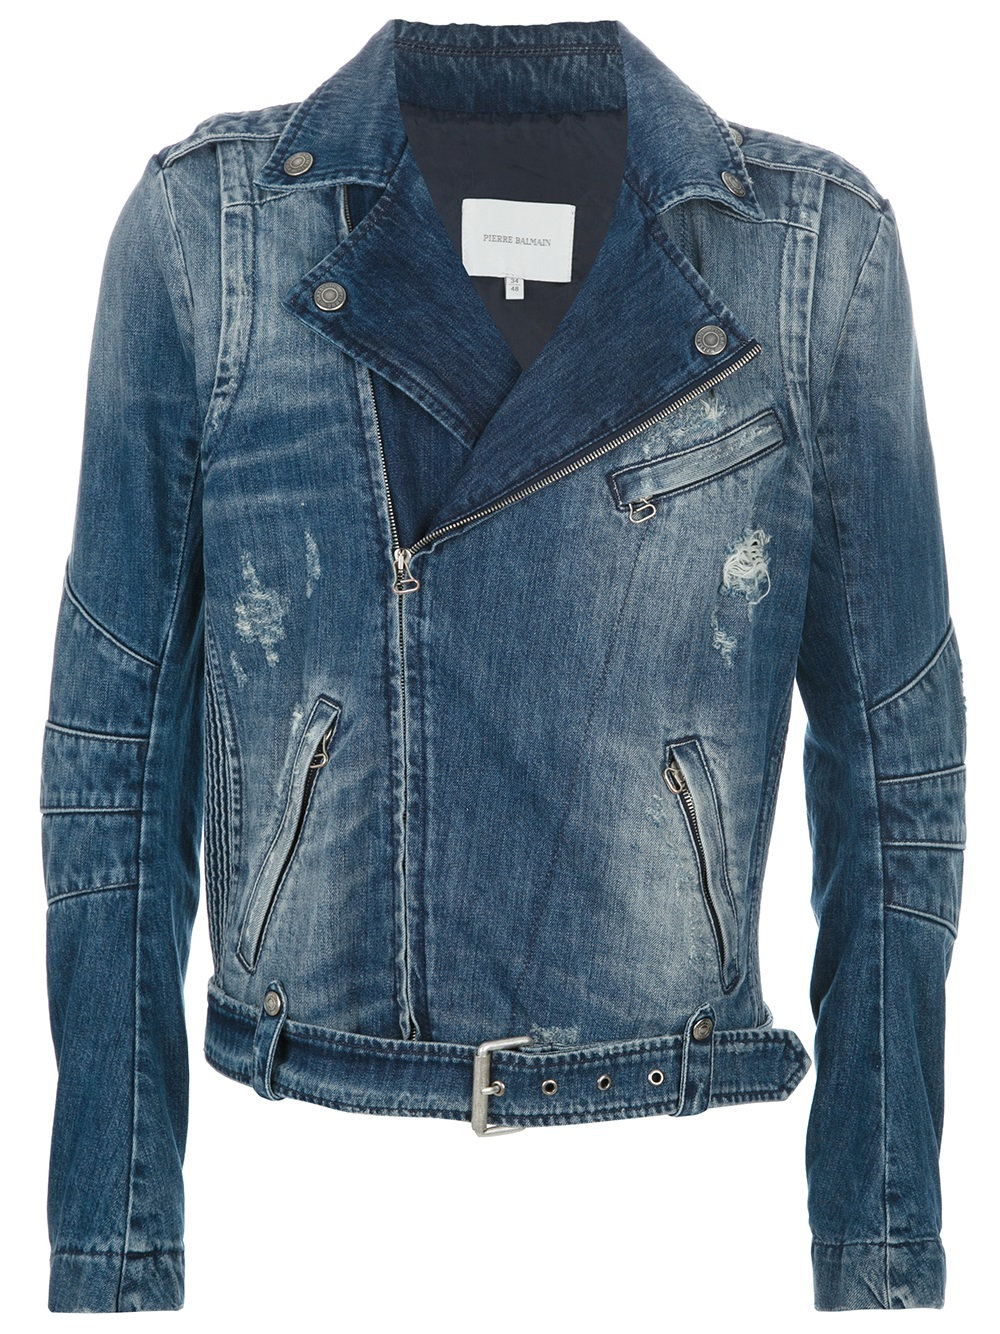 A collarless biker-style jacket in a distressed denim. The jacket features a full length zip fastening, four front pockets and popper cuffs. The Biker jacket is finished with a Superdry logo tab on the top pocket.